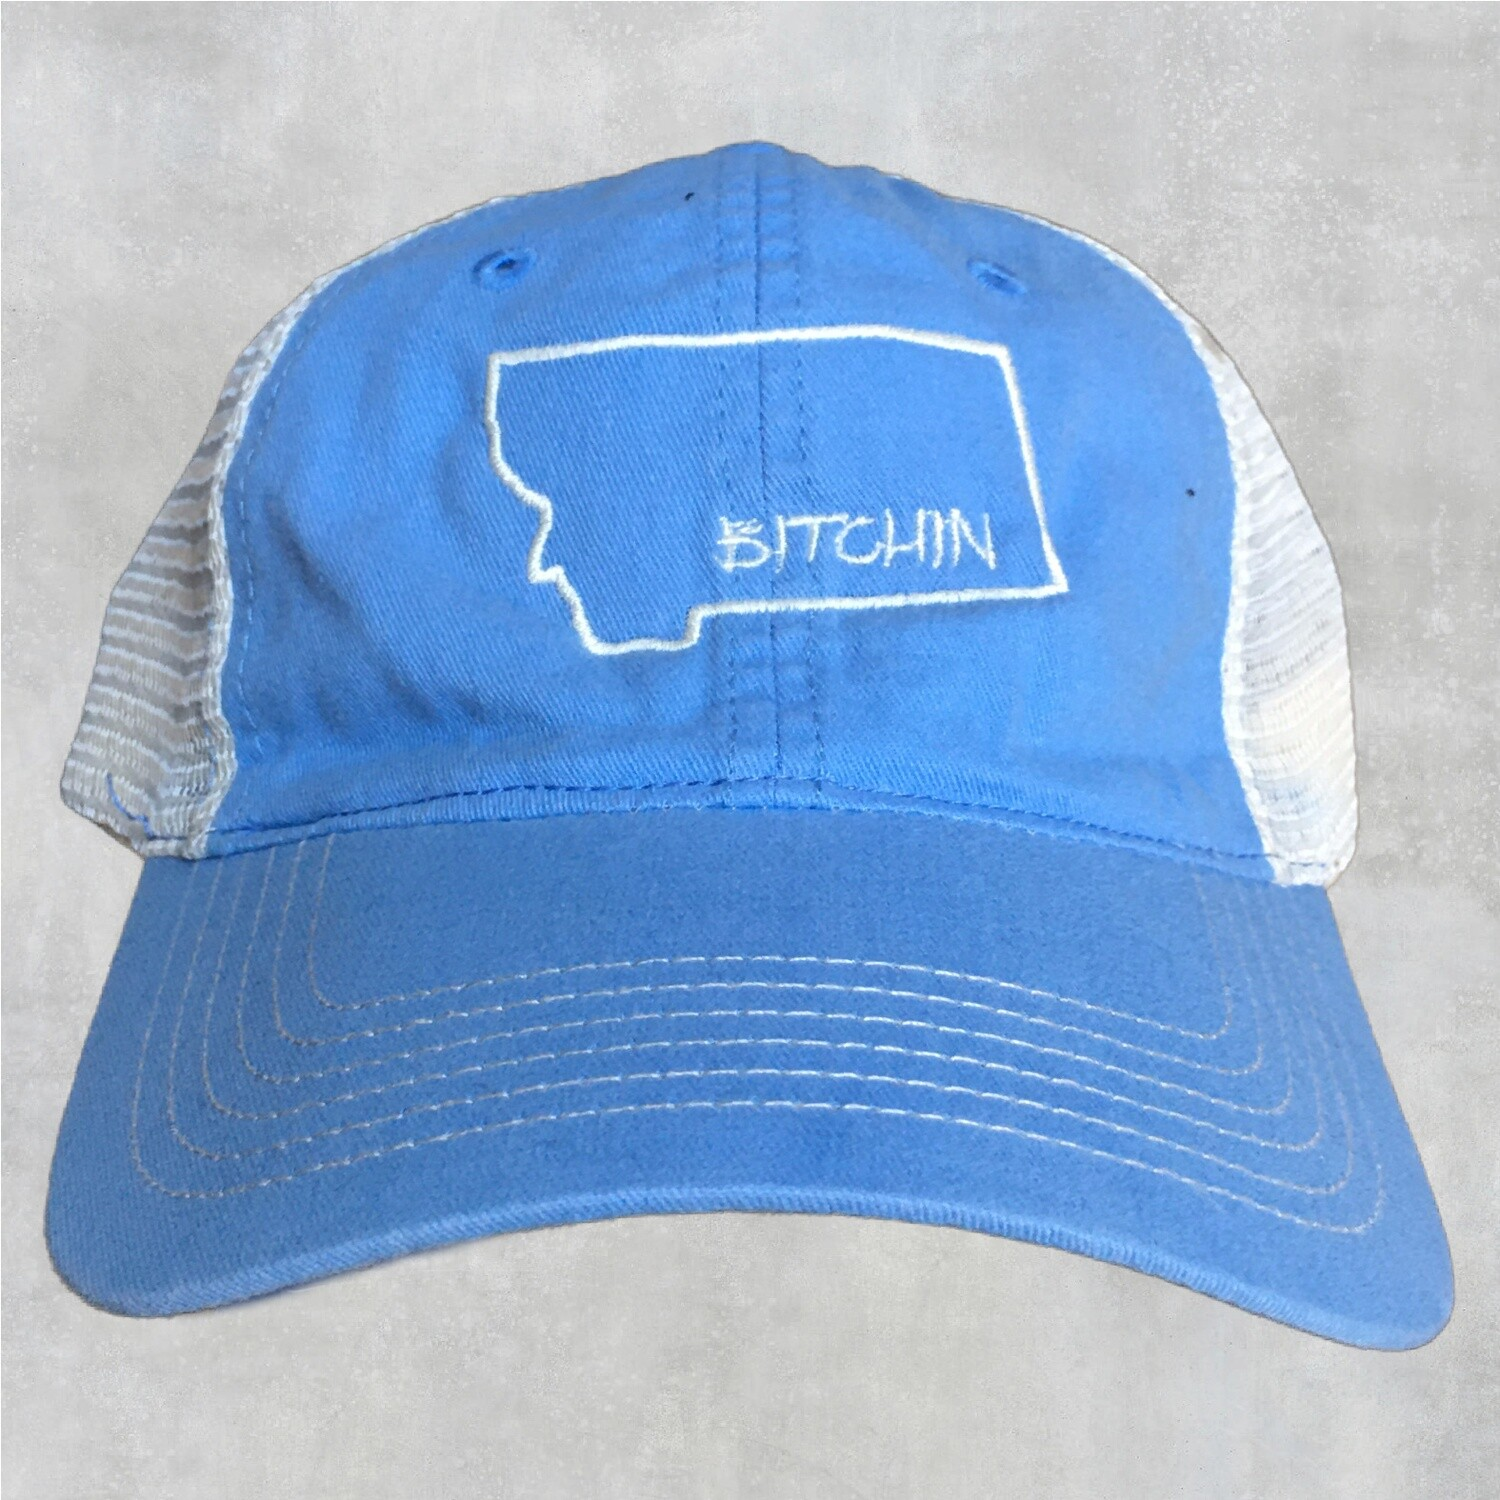 Bitchin Collapsible Cap